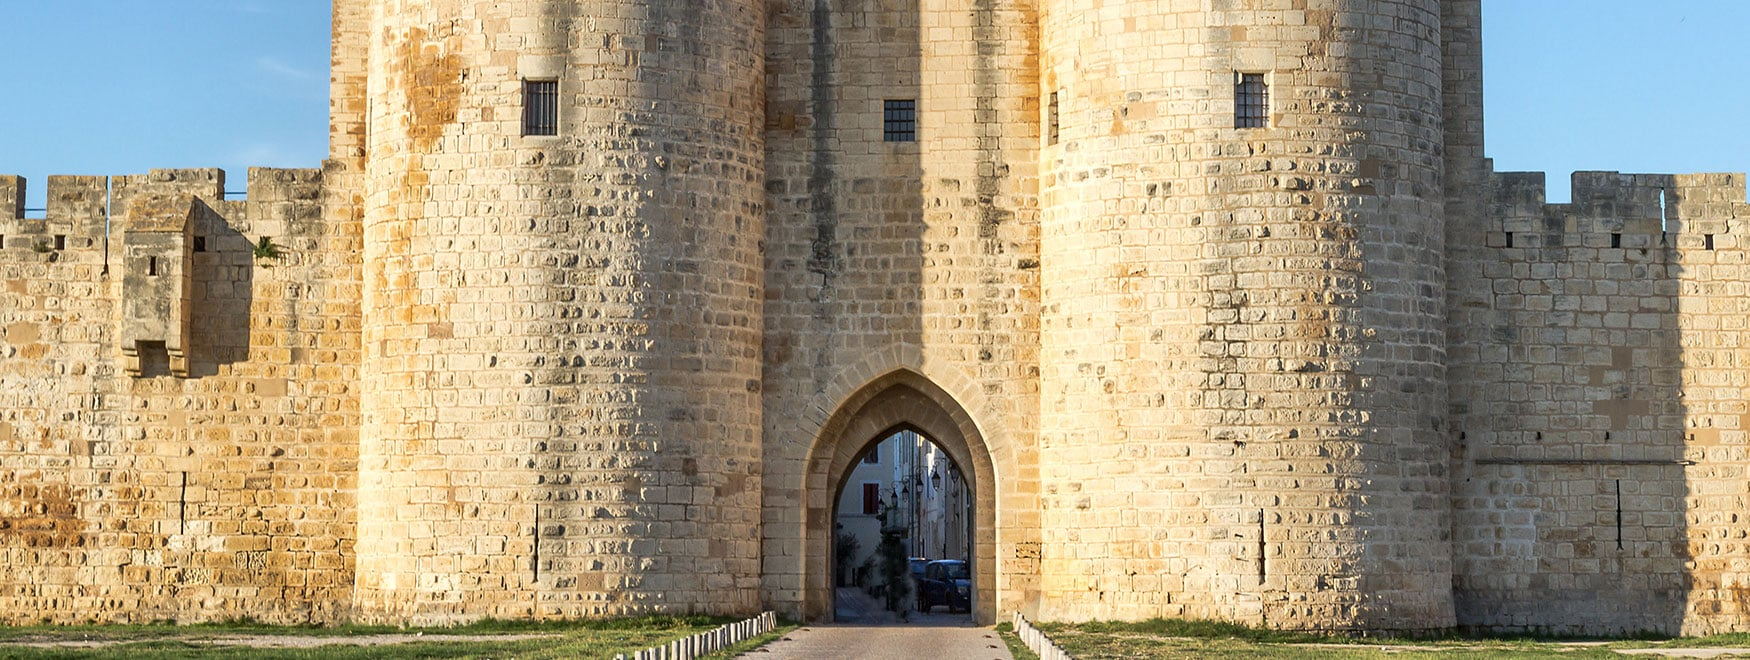 Excursion to Aigues-Mortes in the Camargue